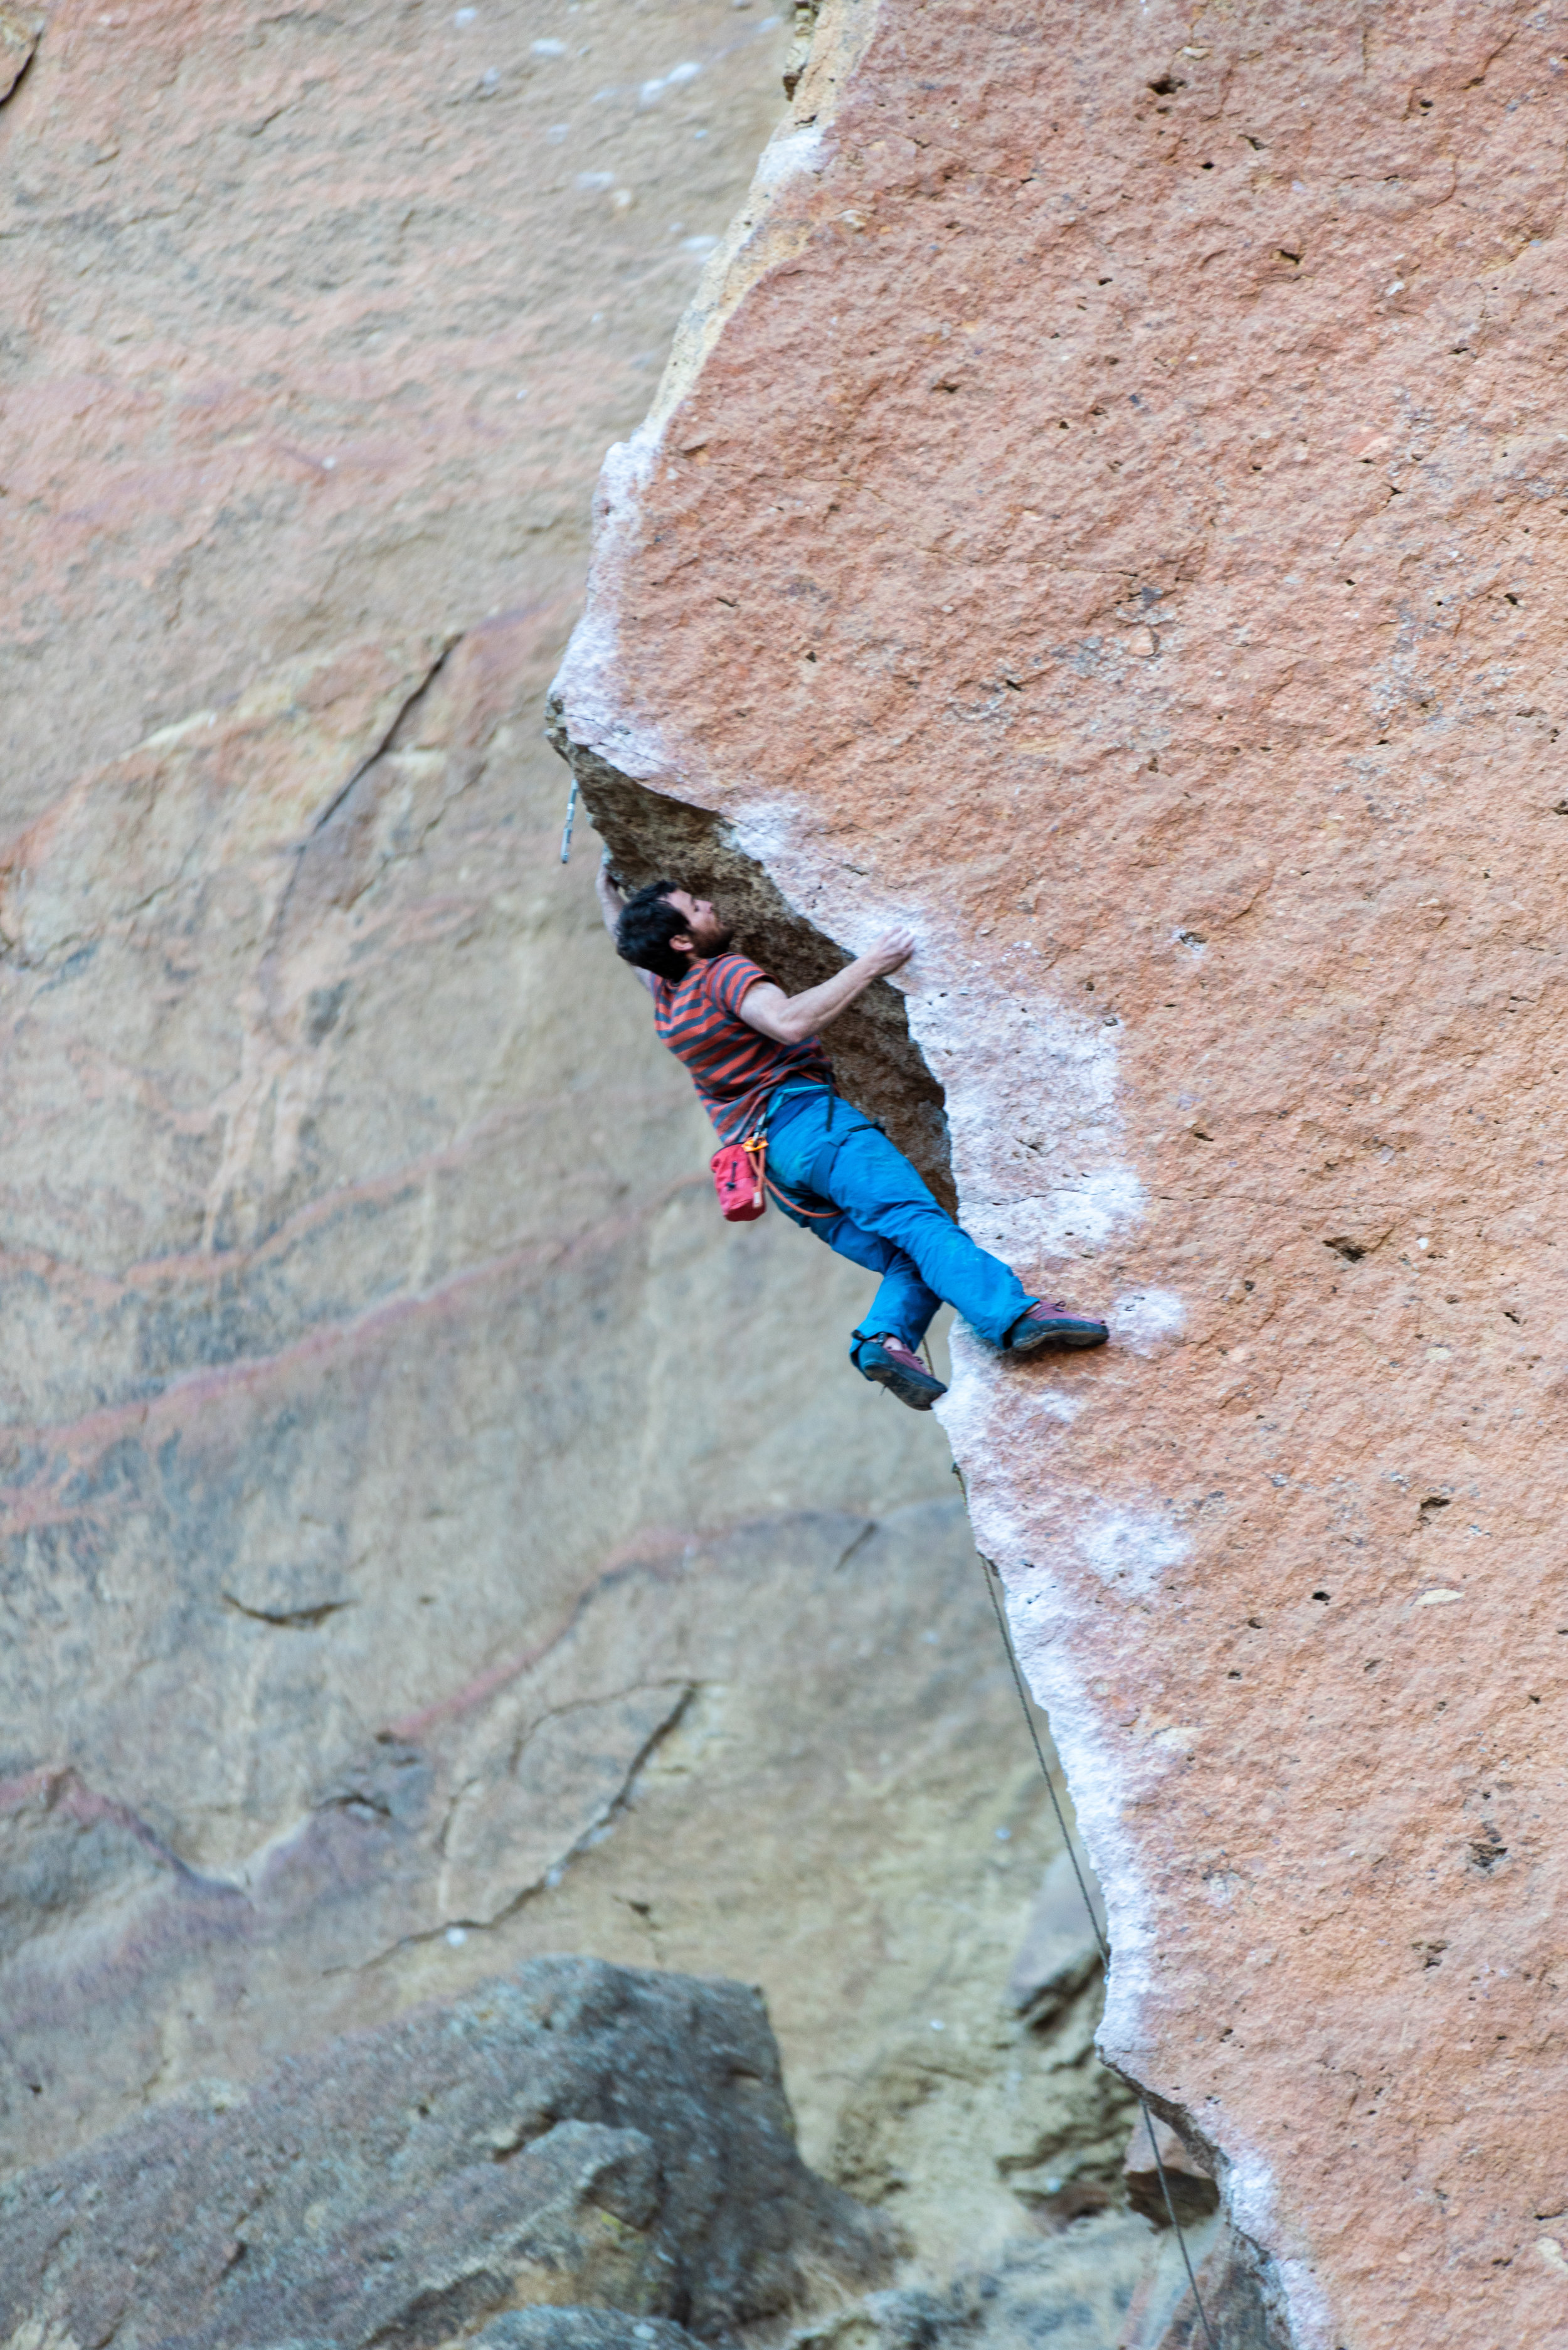 Matt Fineman on Chain Reaction at Smith Rock